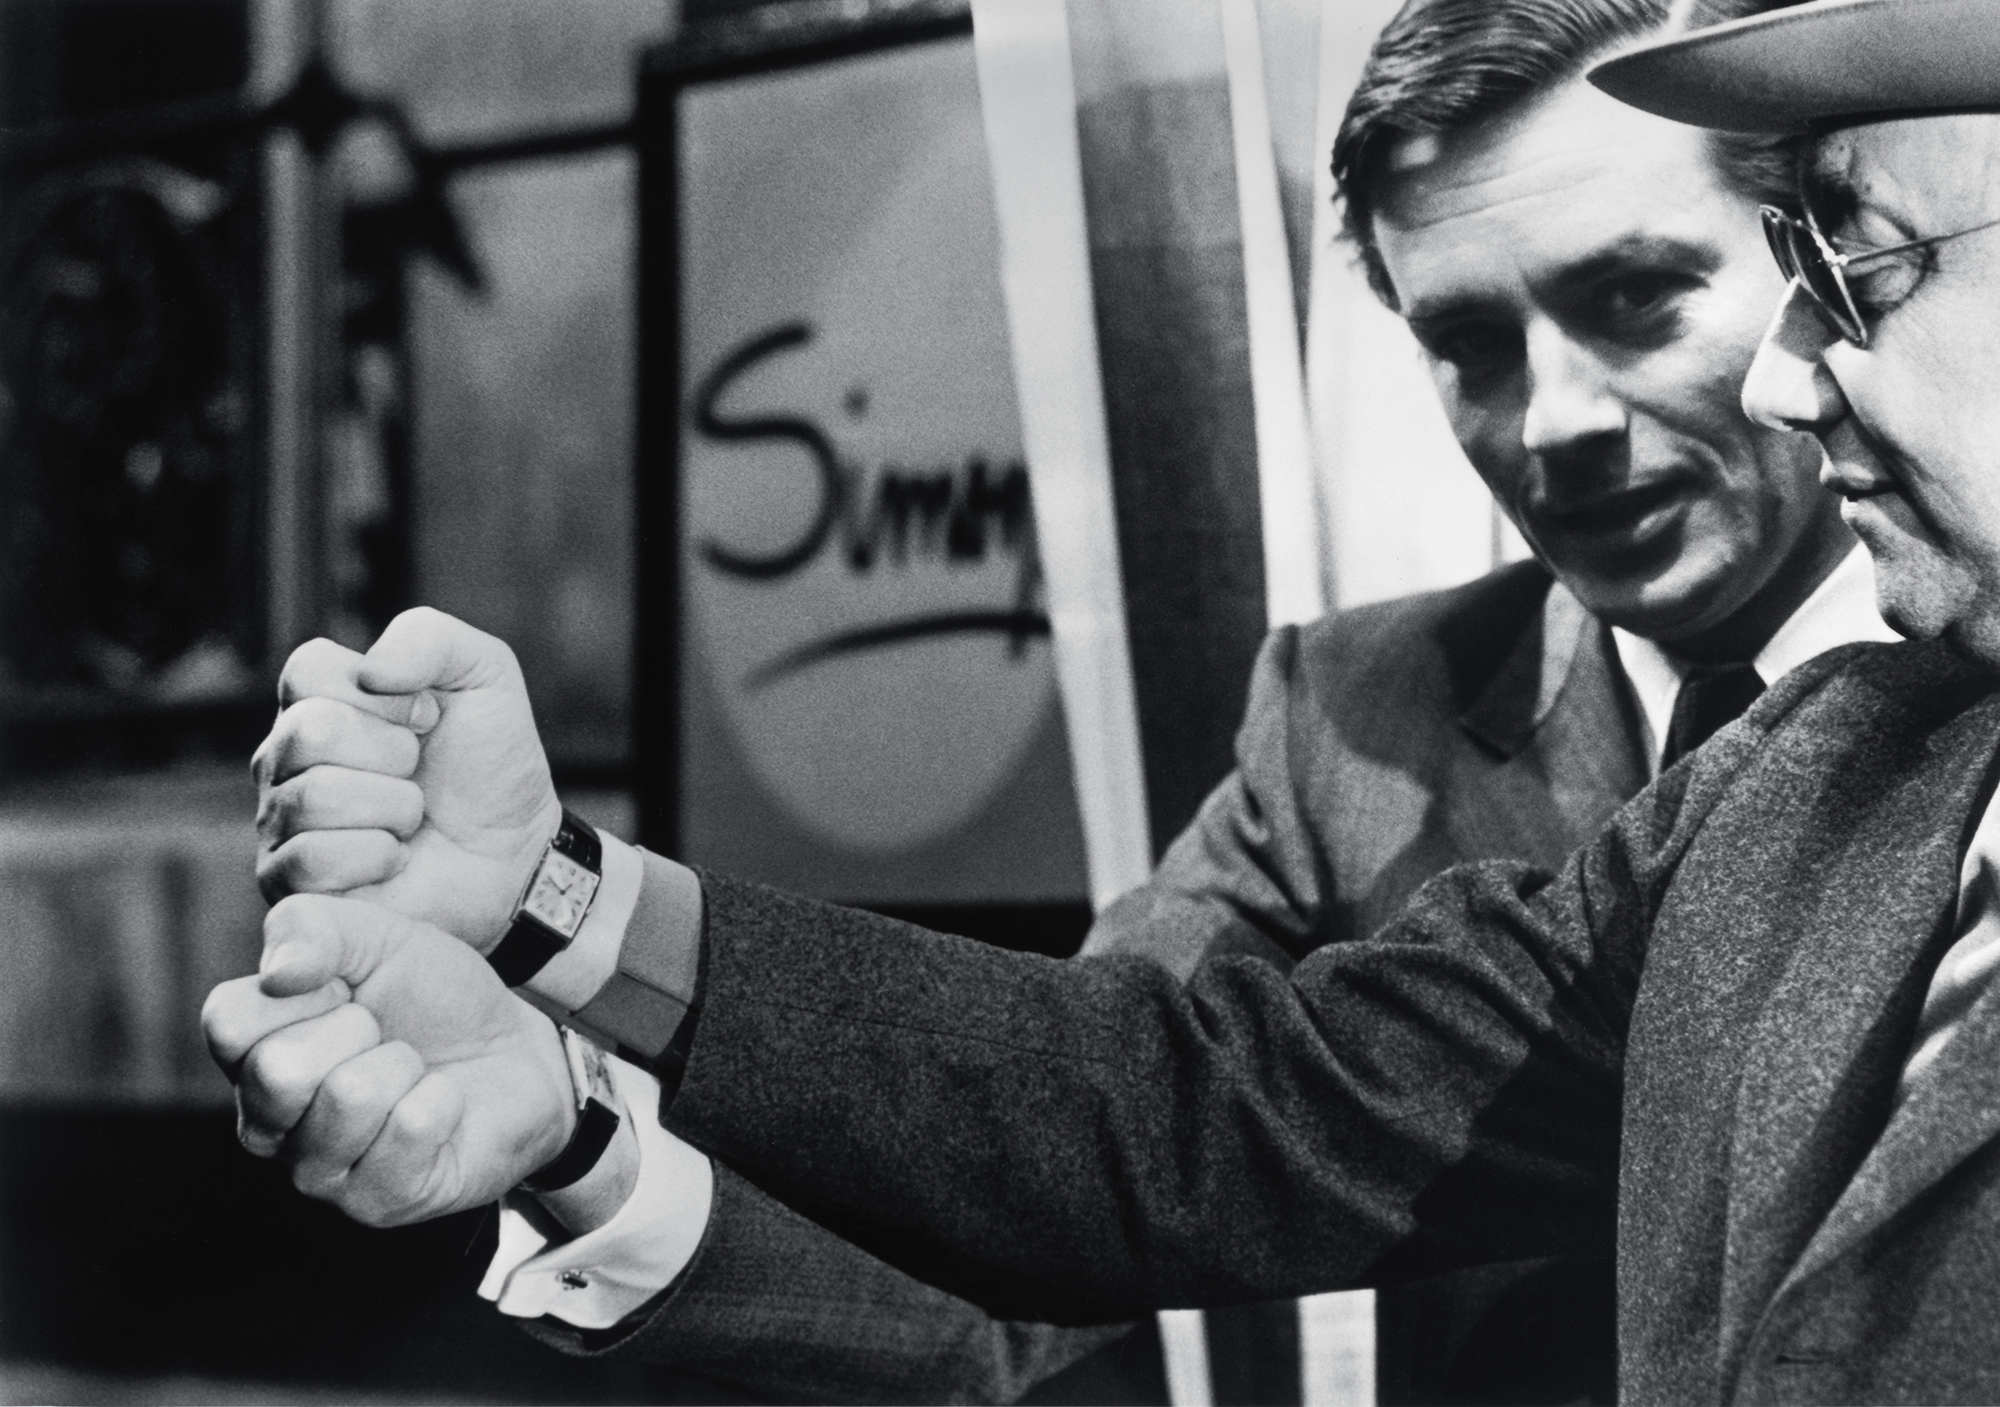 Alain Delon and Jean-Pierre Melville, both wearing the Cartier Tank watch that turns 100 this year